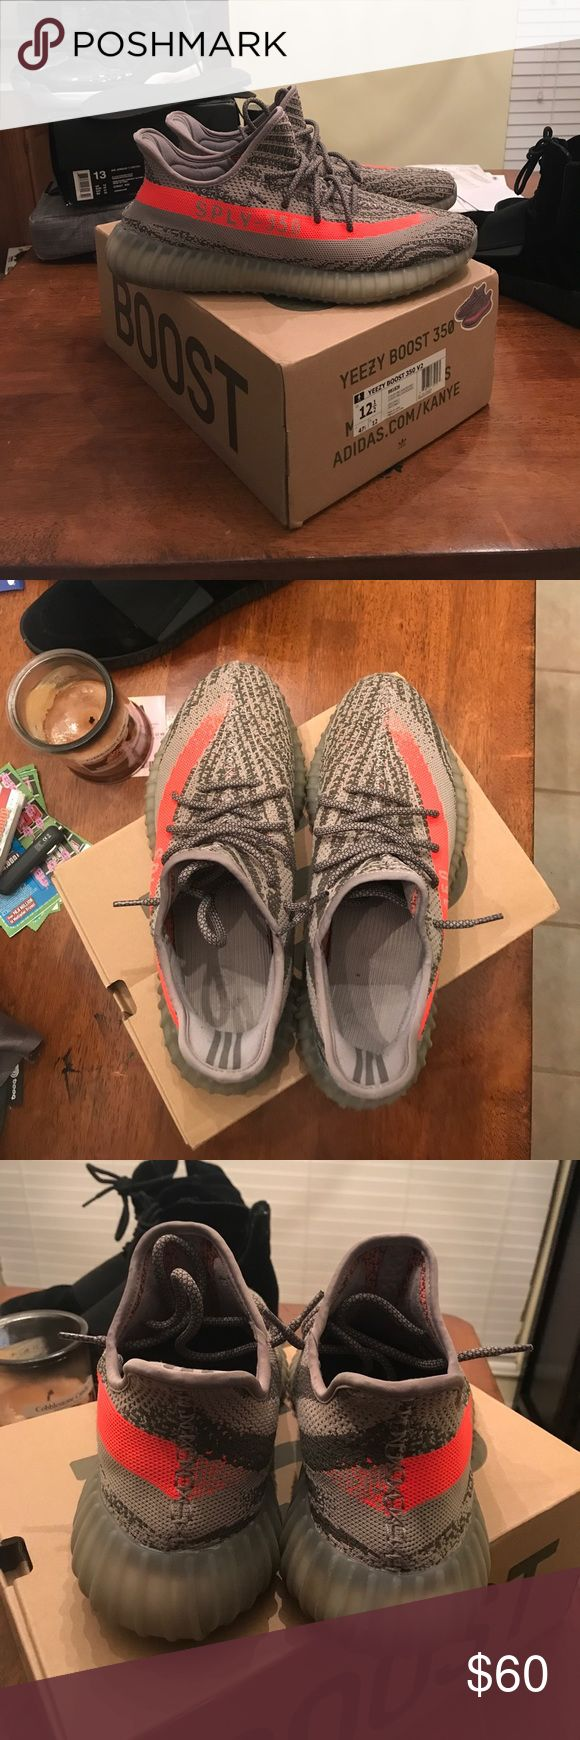 yeezy 350 boost Beluga bought these about a year ago, only worn 3 times. Really good rep. Comes with box and receipt from Footlocker. I've got nothing but compliments from everyone at school adidas Shoes